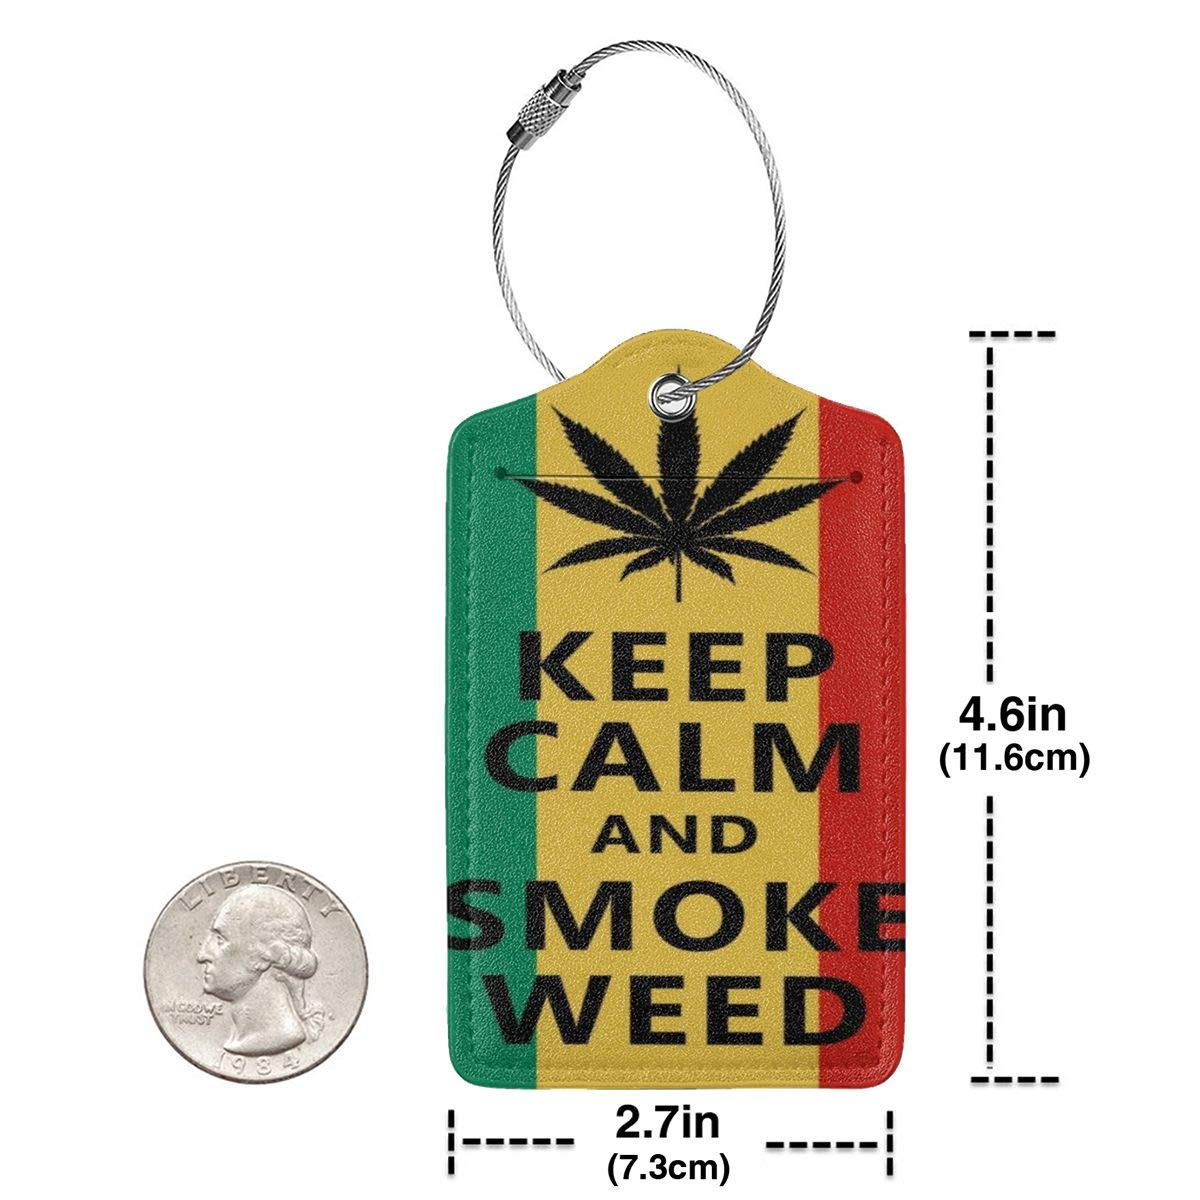 GoldK Smoke Weed Flag Leather Luggage Tags Baggage Bag Instrument Tag Travel Labels Accessories with Privacy Cover